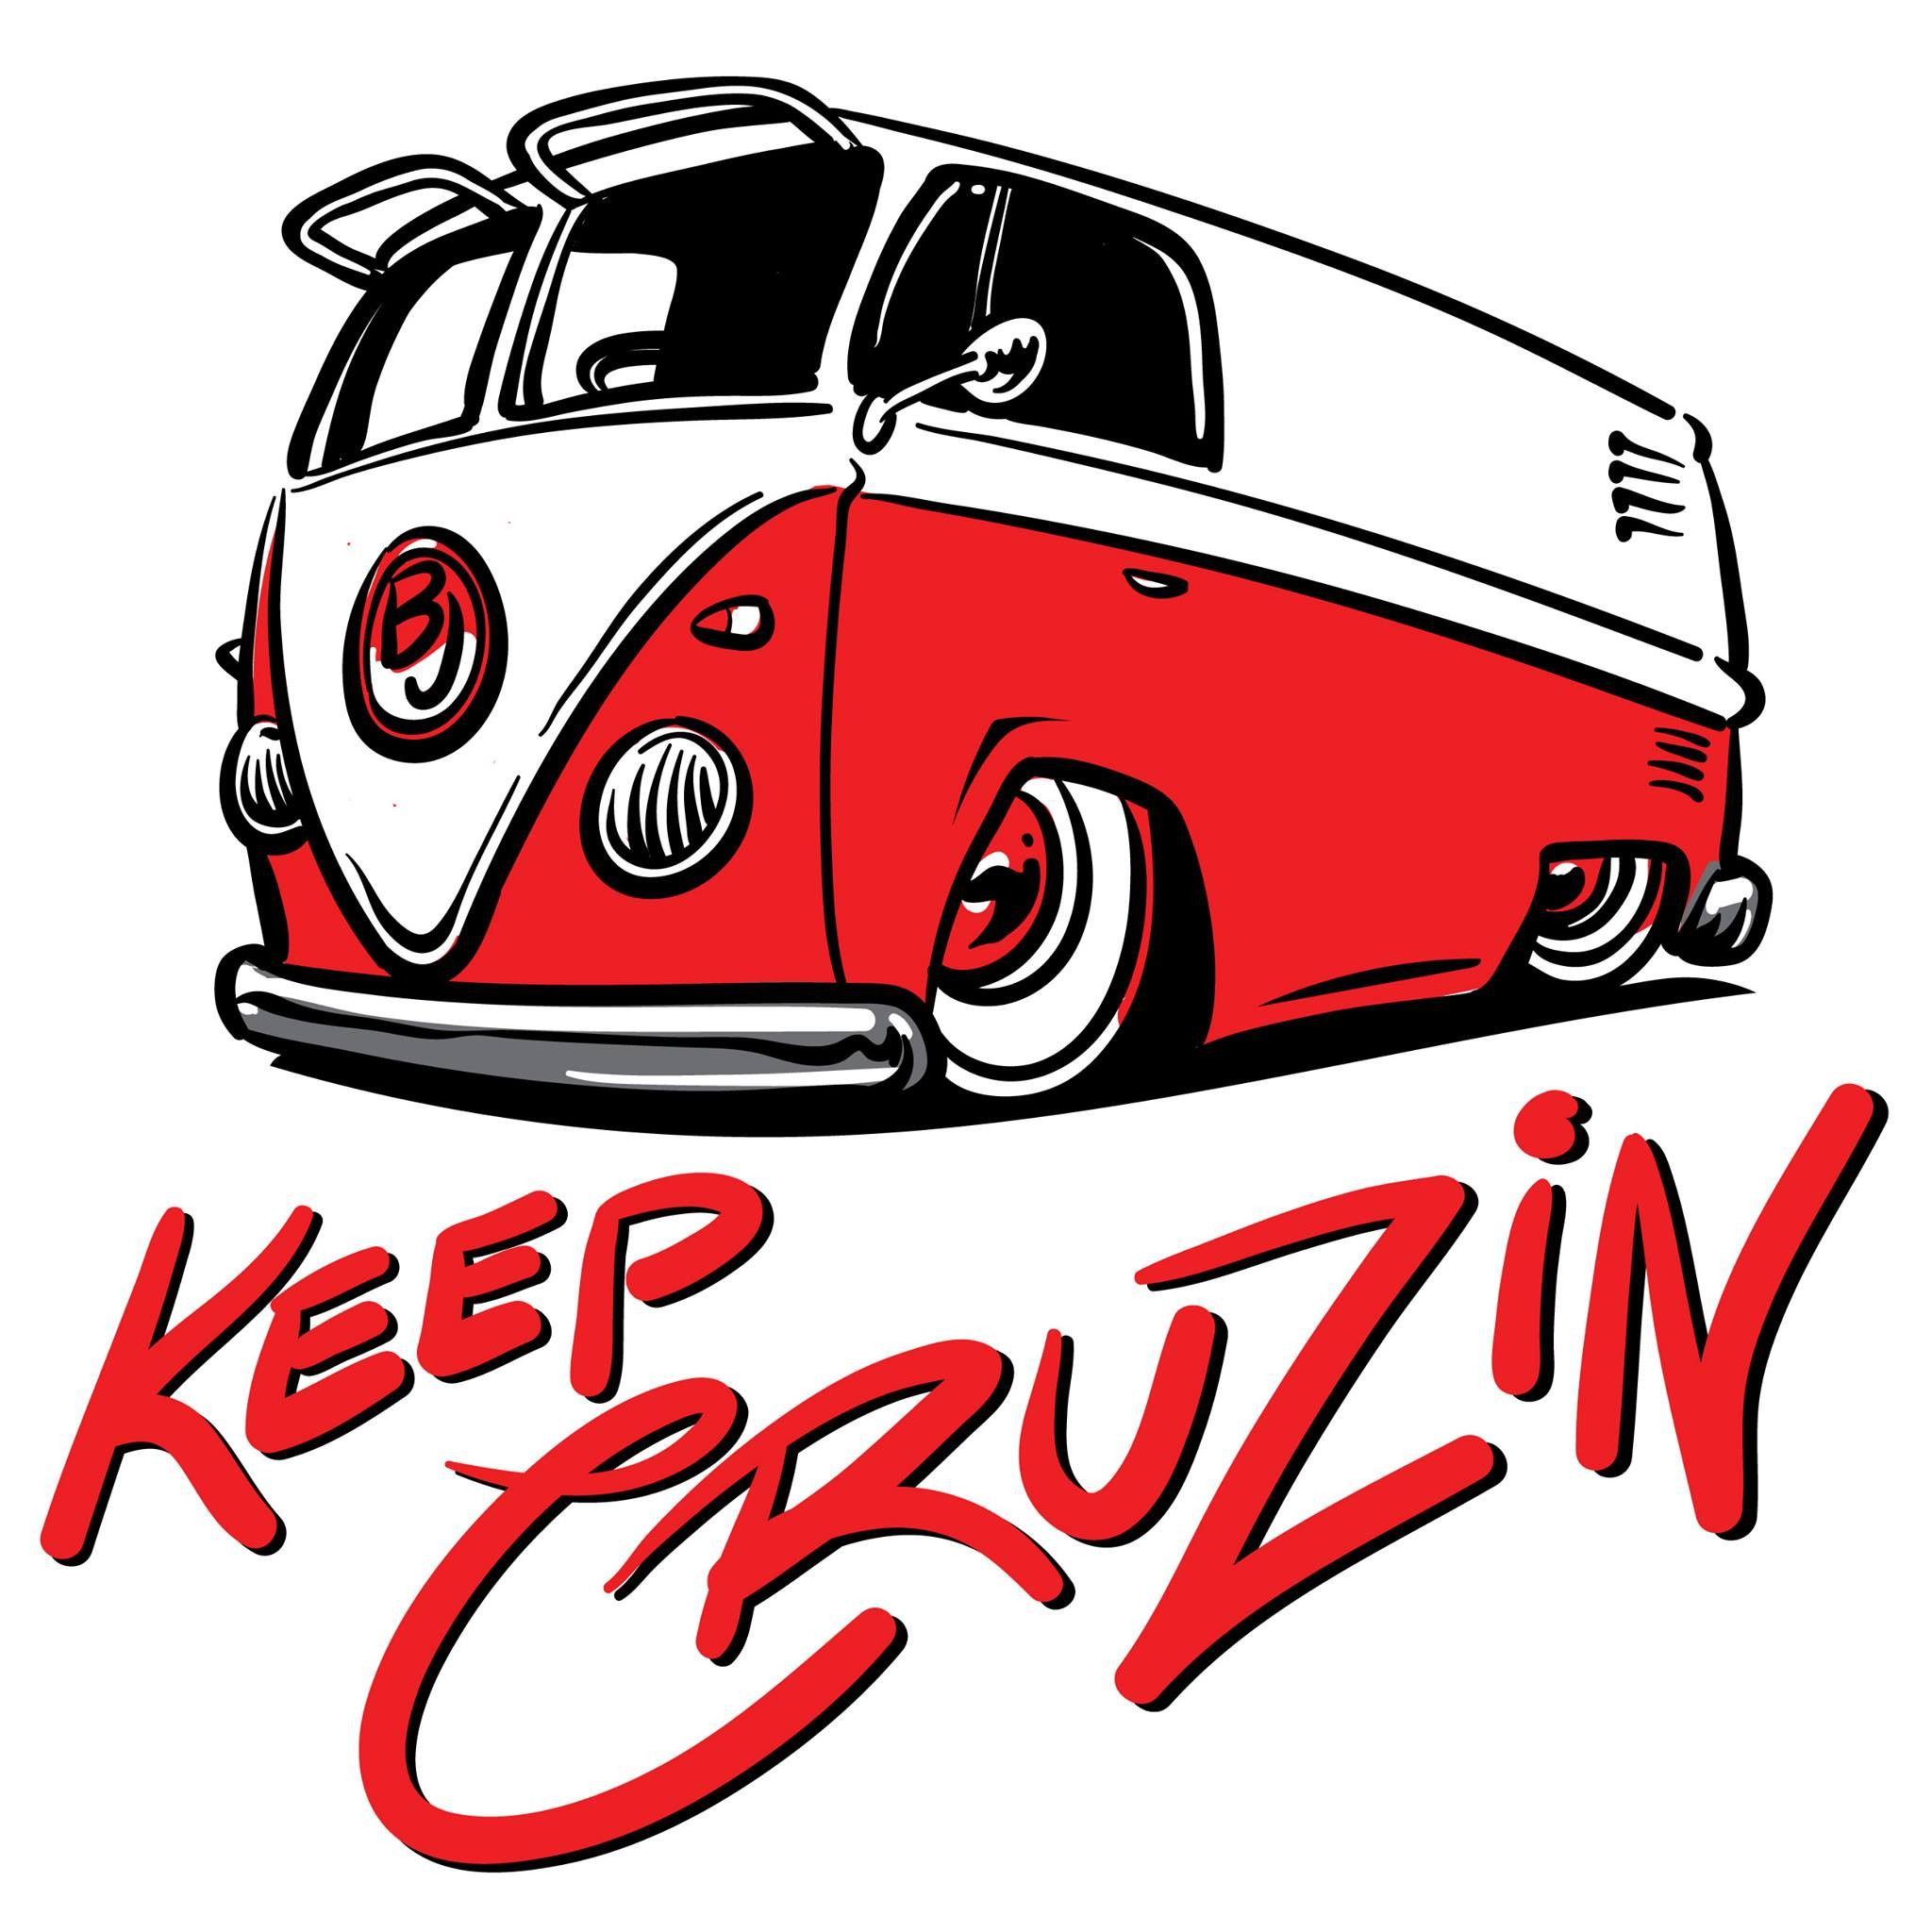 Sticker keep cruzin red splitty vw coolvwstuff bus volkswagen